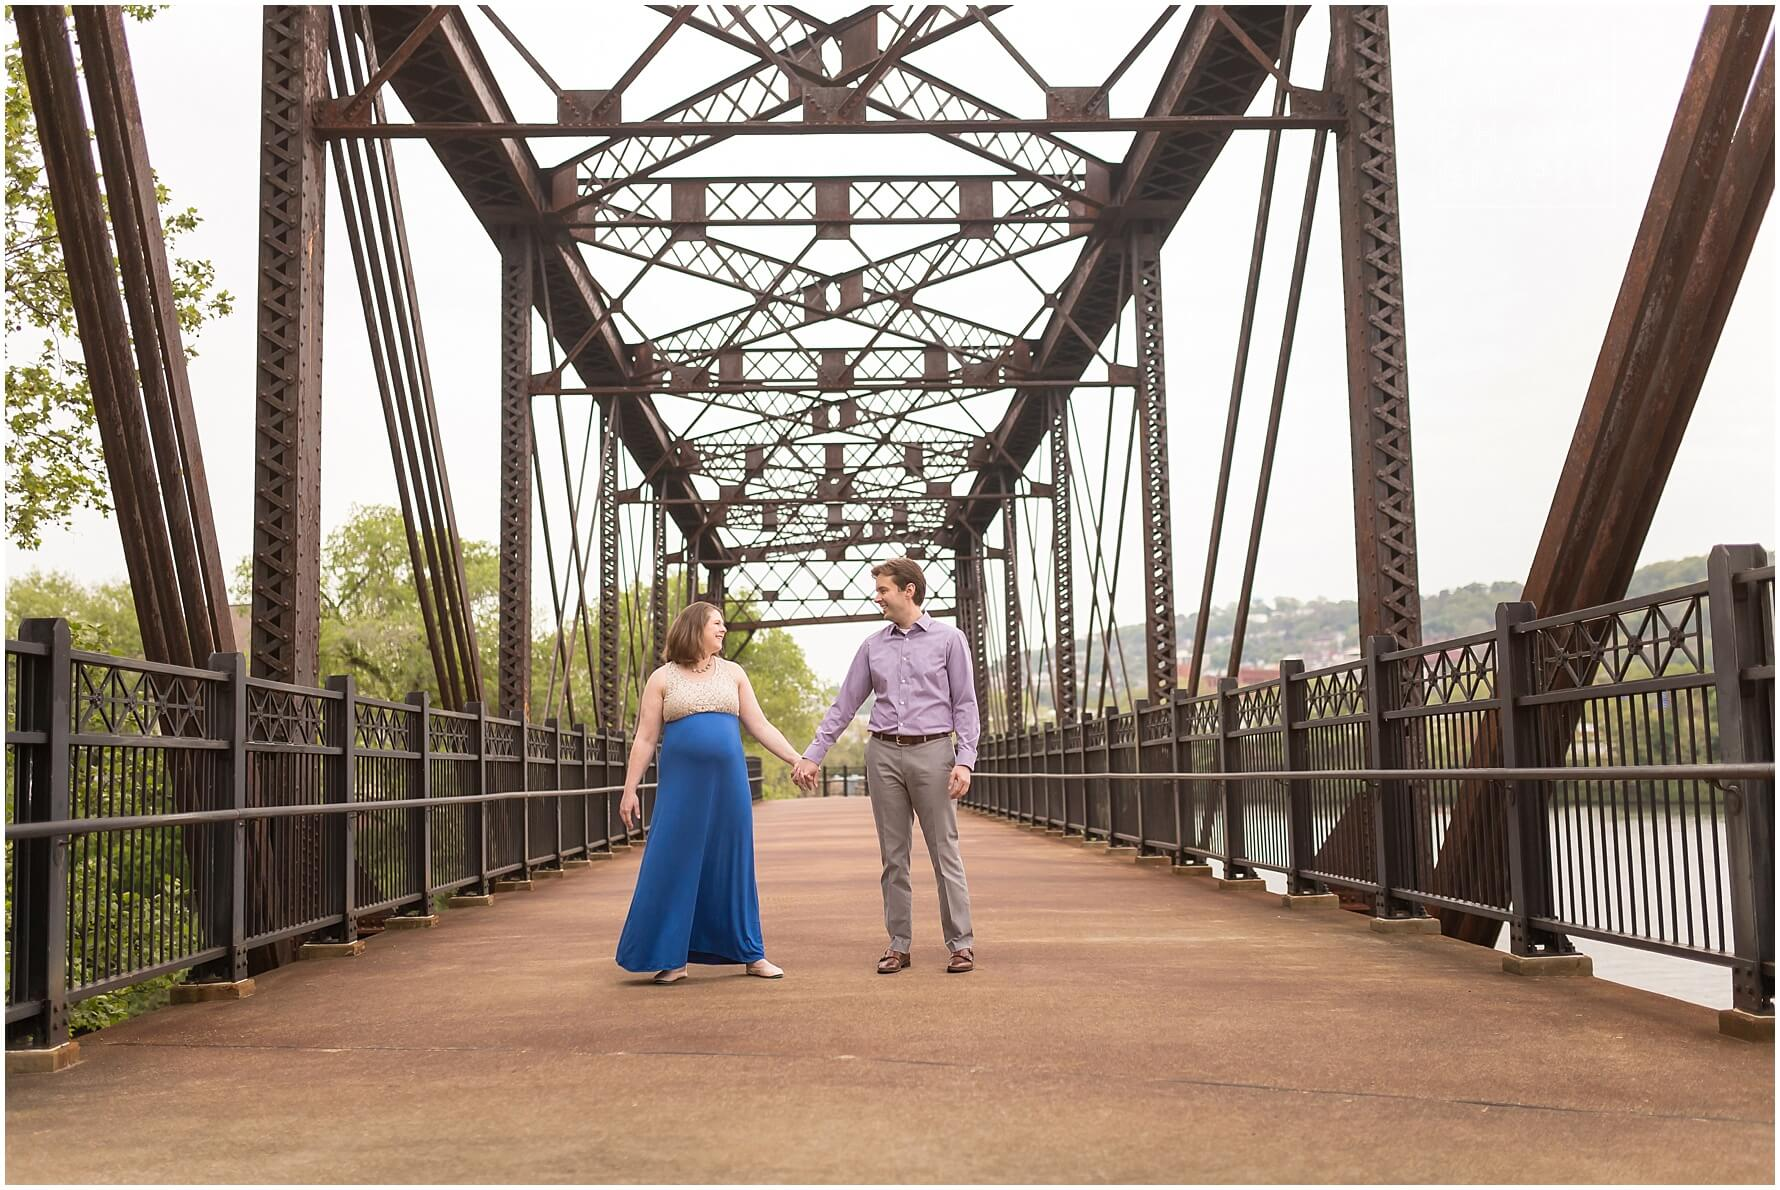 Ron & Katie Maternity Session